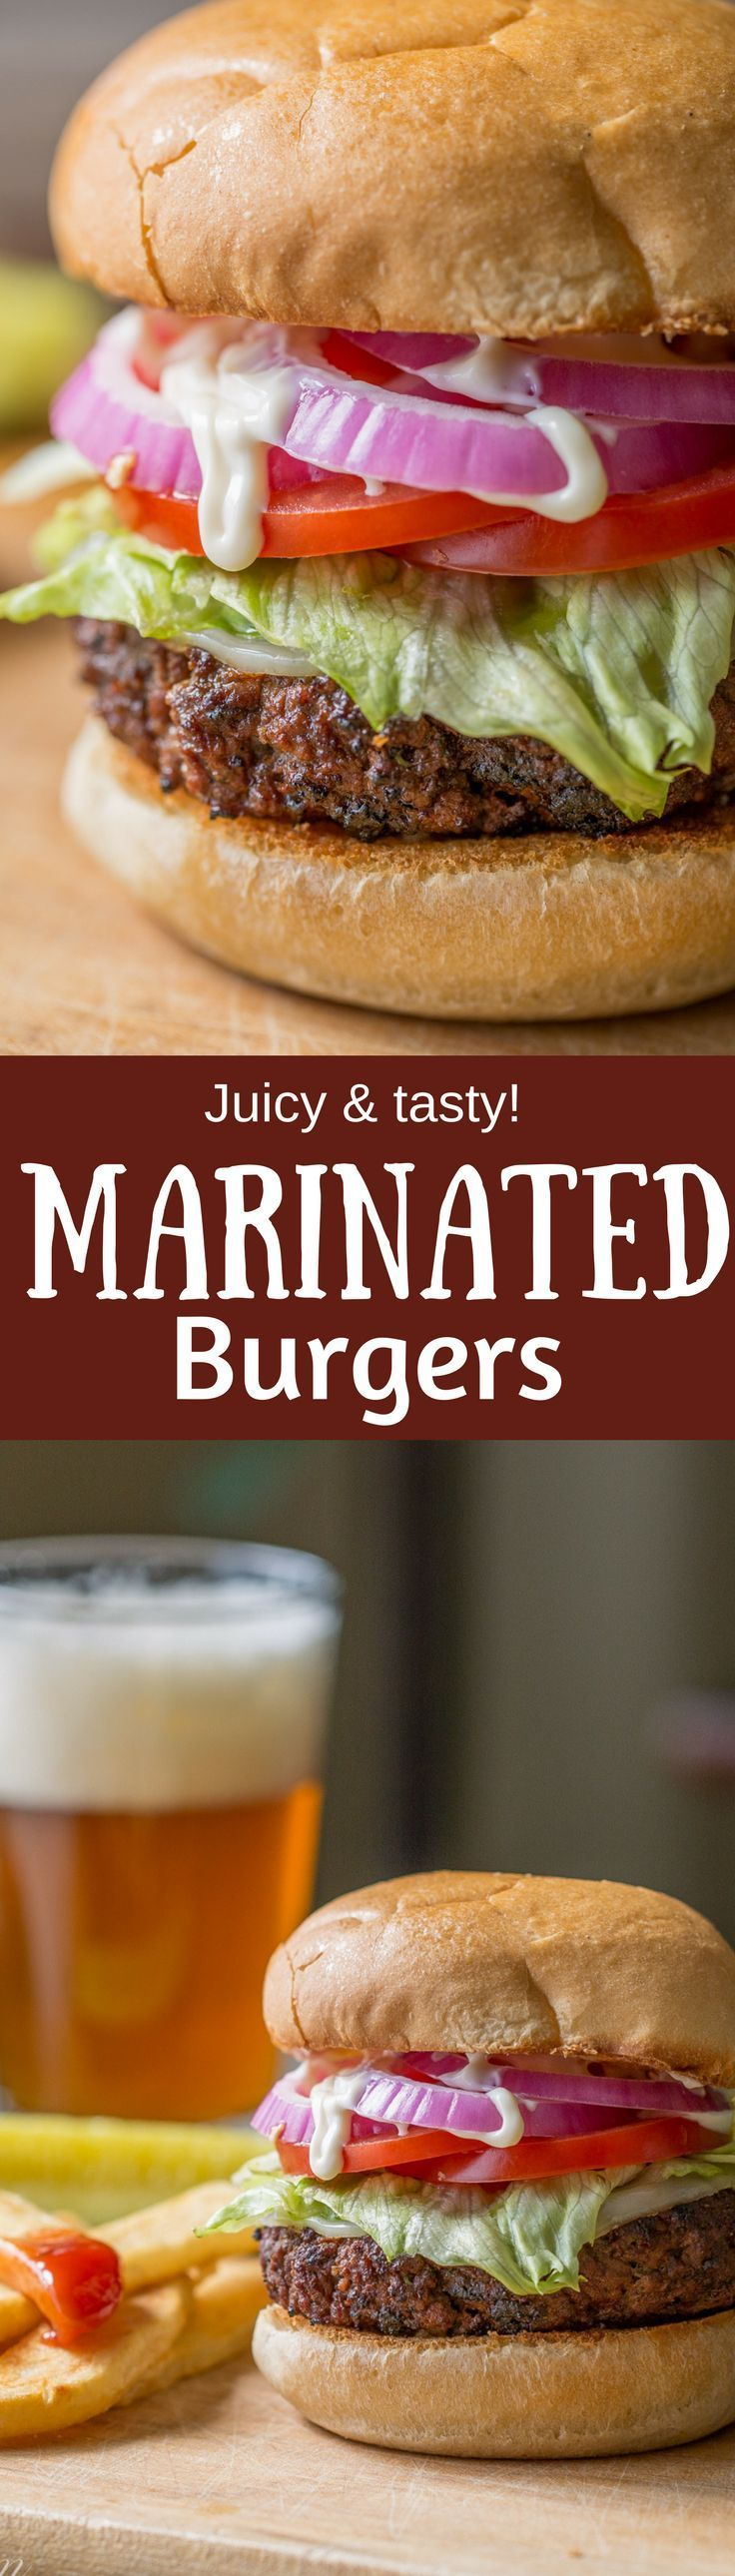 Marinated Burgers - a deliciously juicy home grilled burger that tastes like steak!  www.savingdessert.com